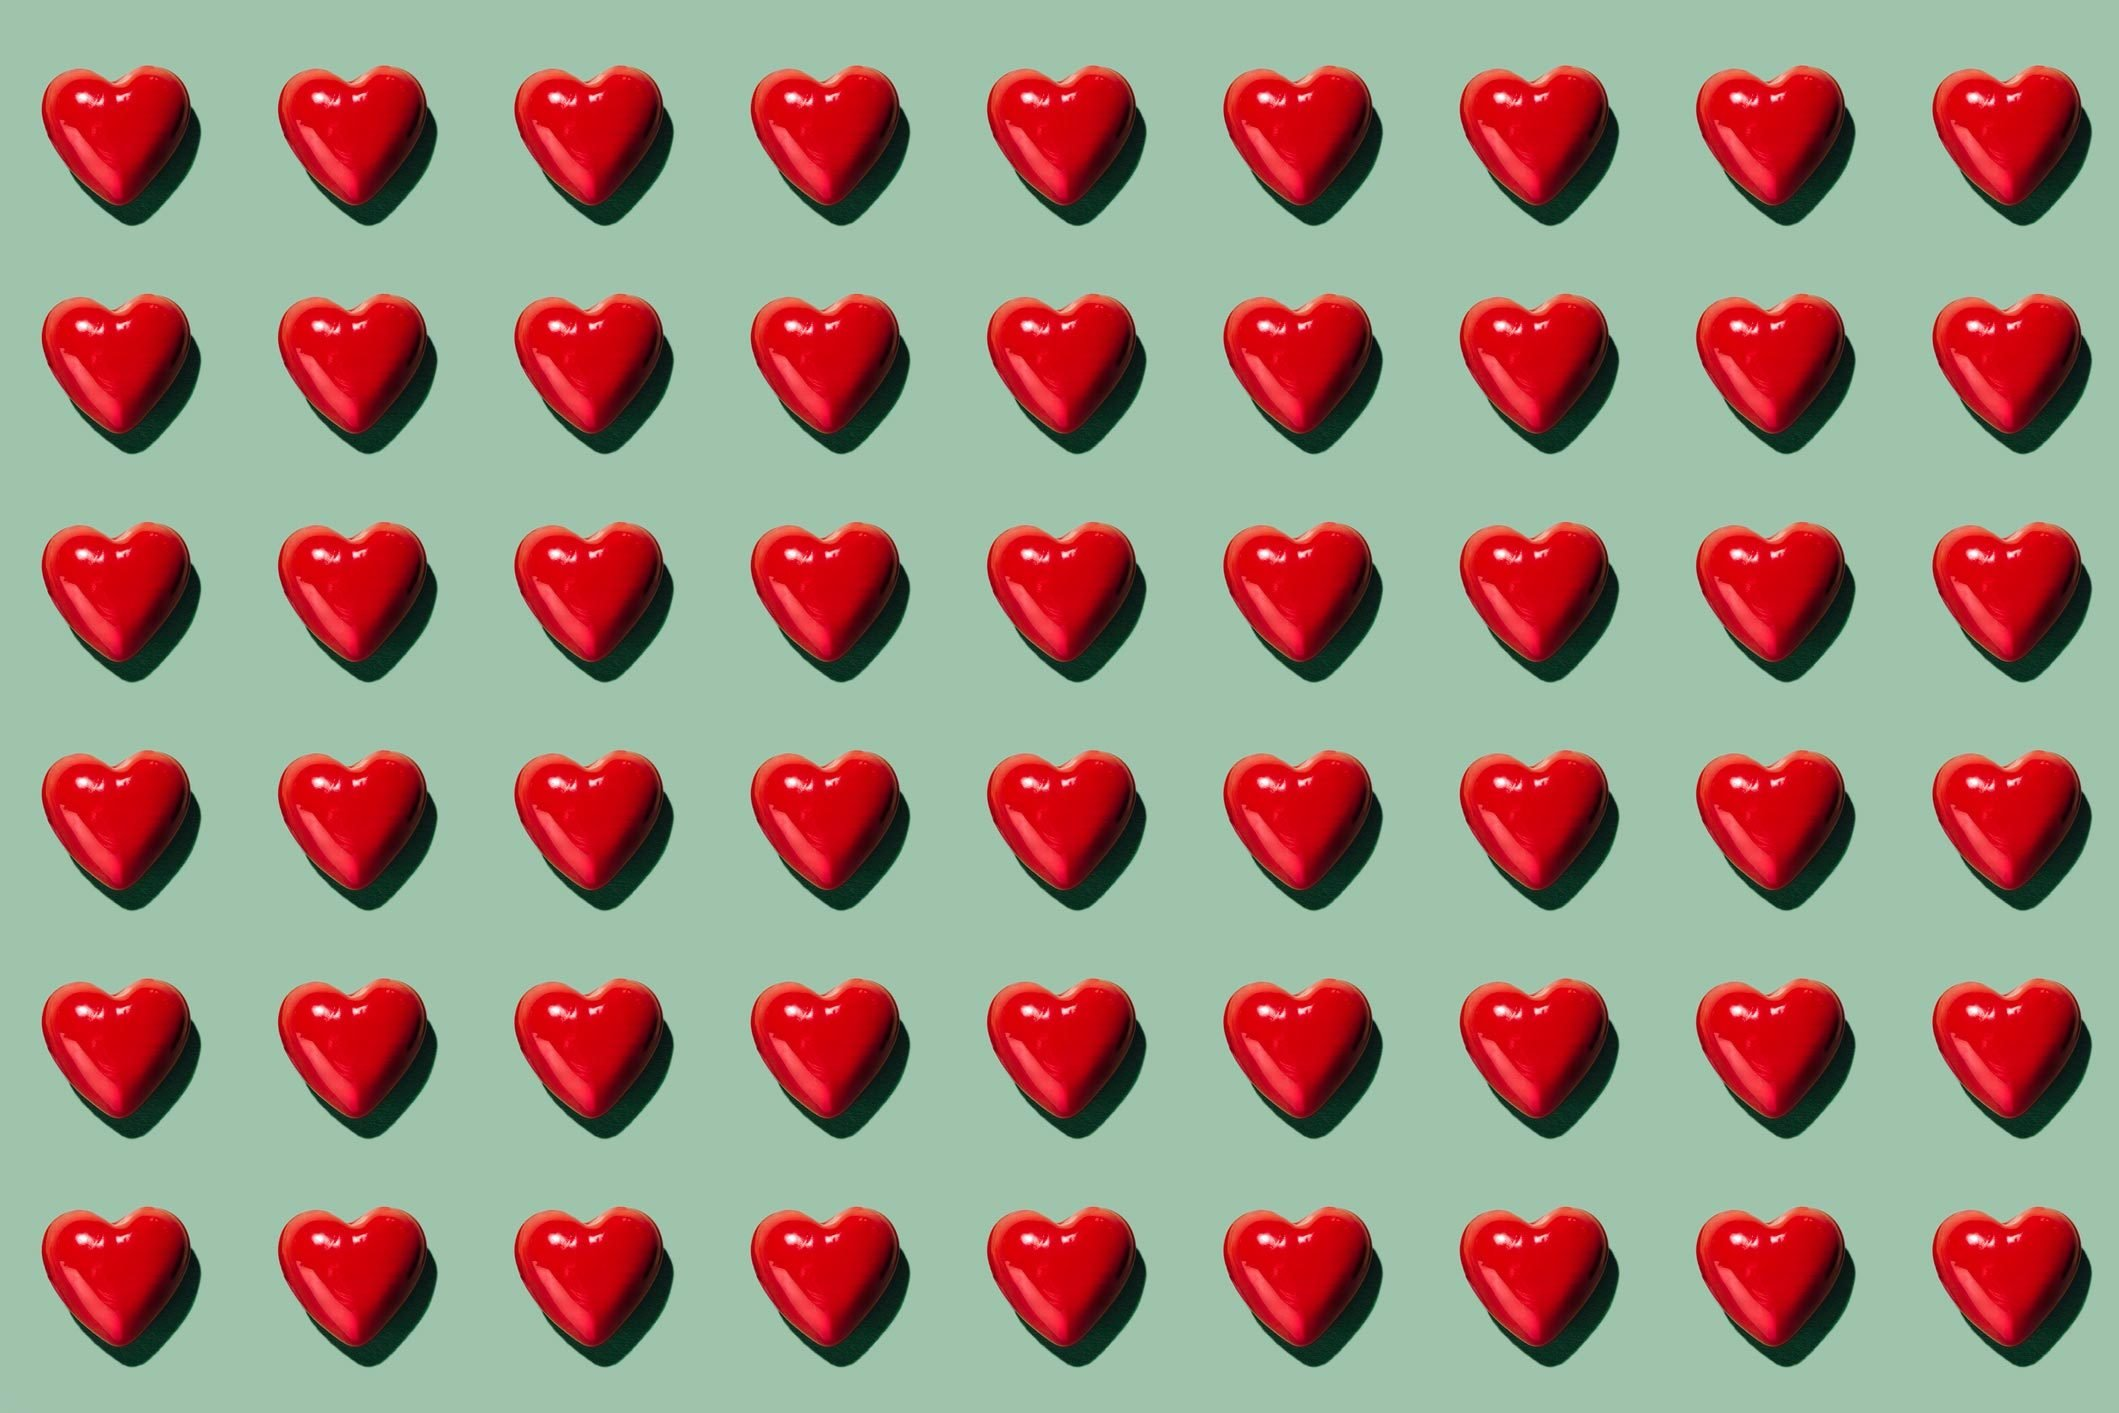 hearts pattern on green background